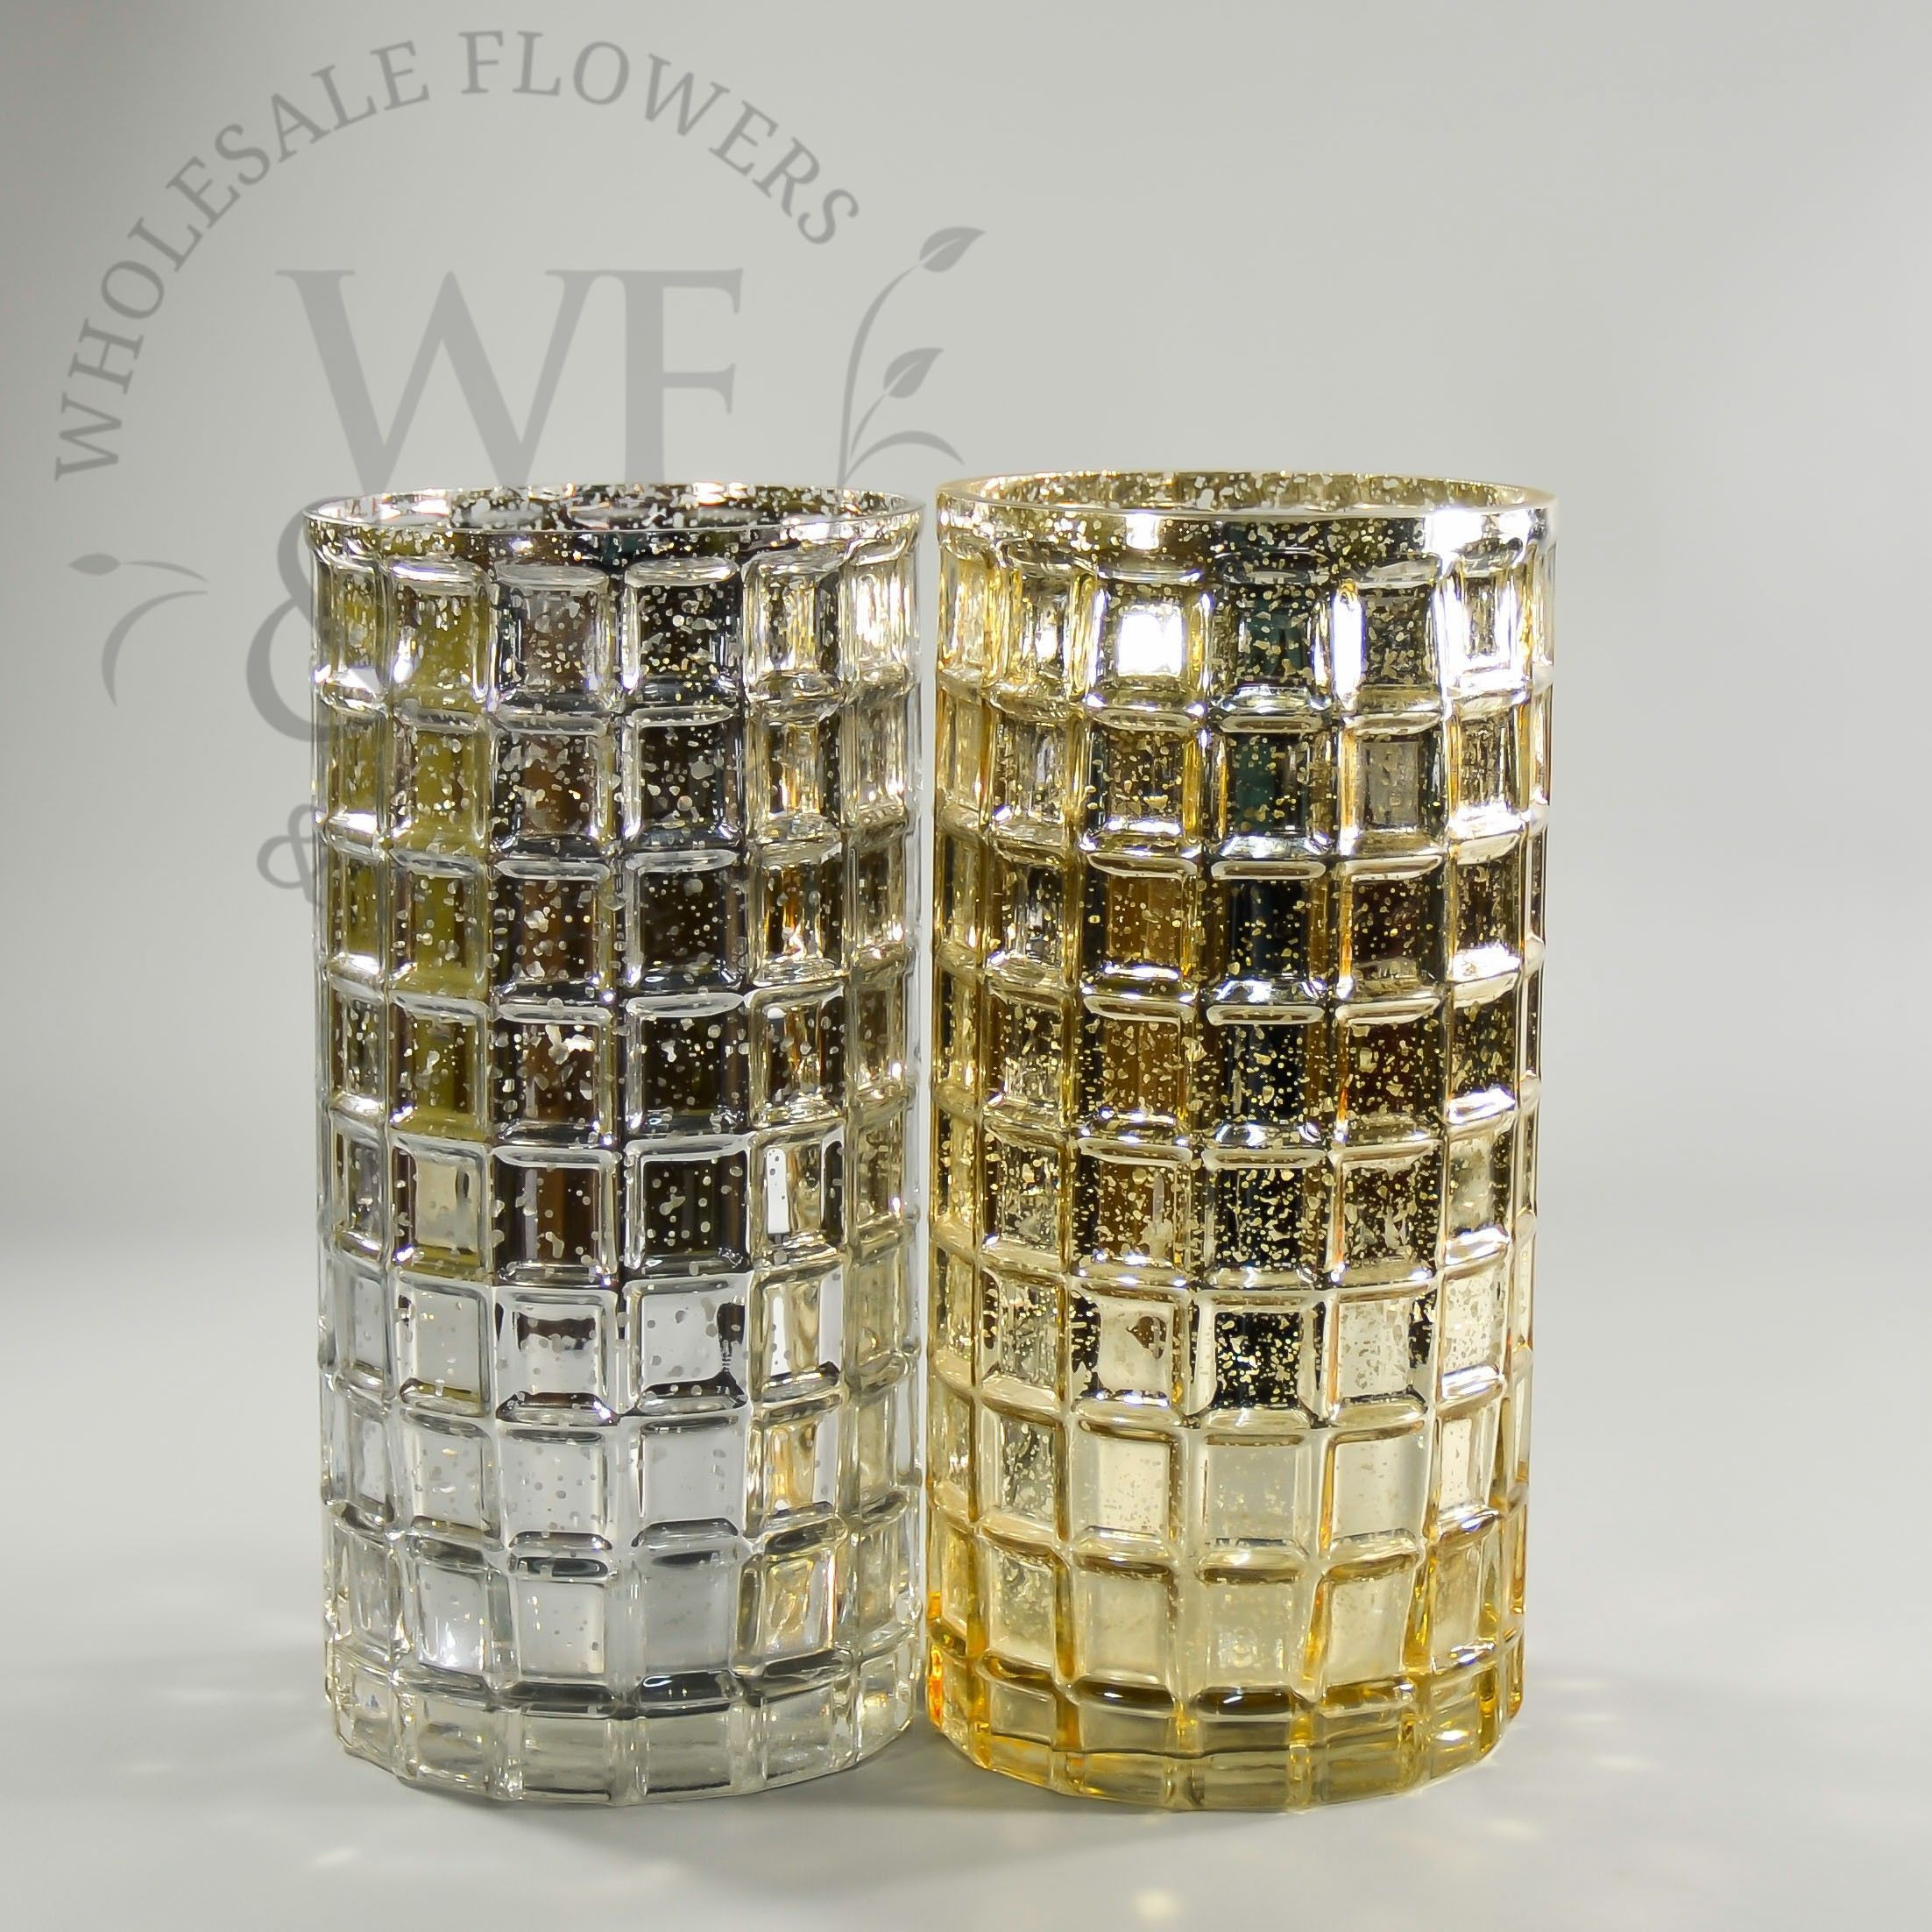 20 X 4 Glass Cylinder Vase Of Photos Of Gold Cylinder Vases Vases Artificial Plants Collection with Regard to Gold Cylinder Vases Collection Silver and Gold Mercury Glass Mosaic Cylinder Vase 10x5in Of Photos Of